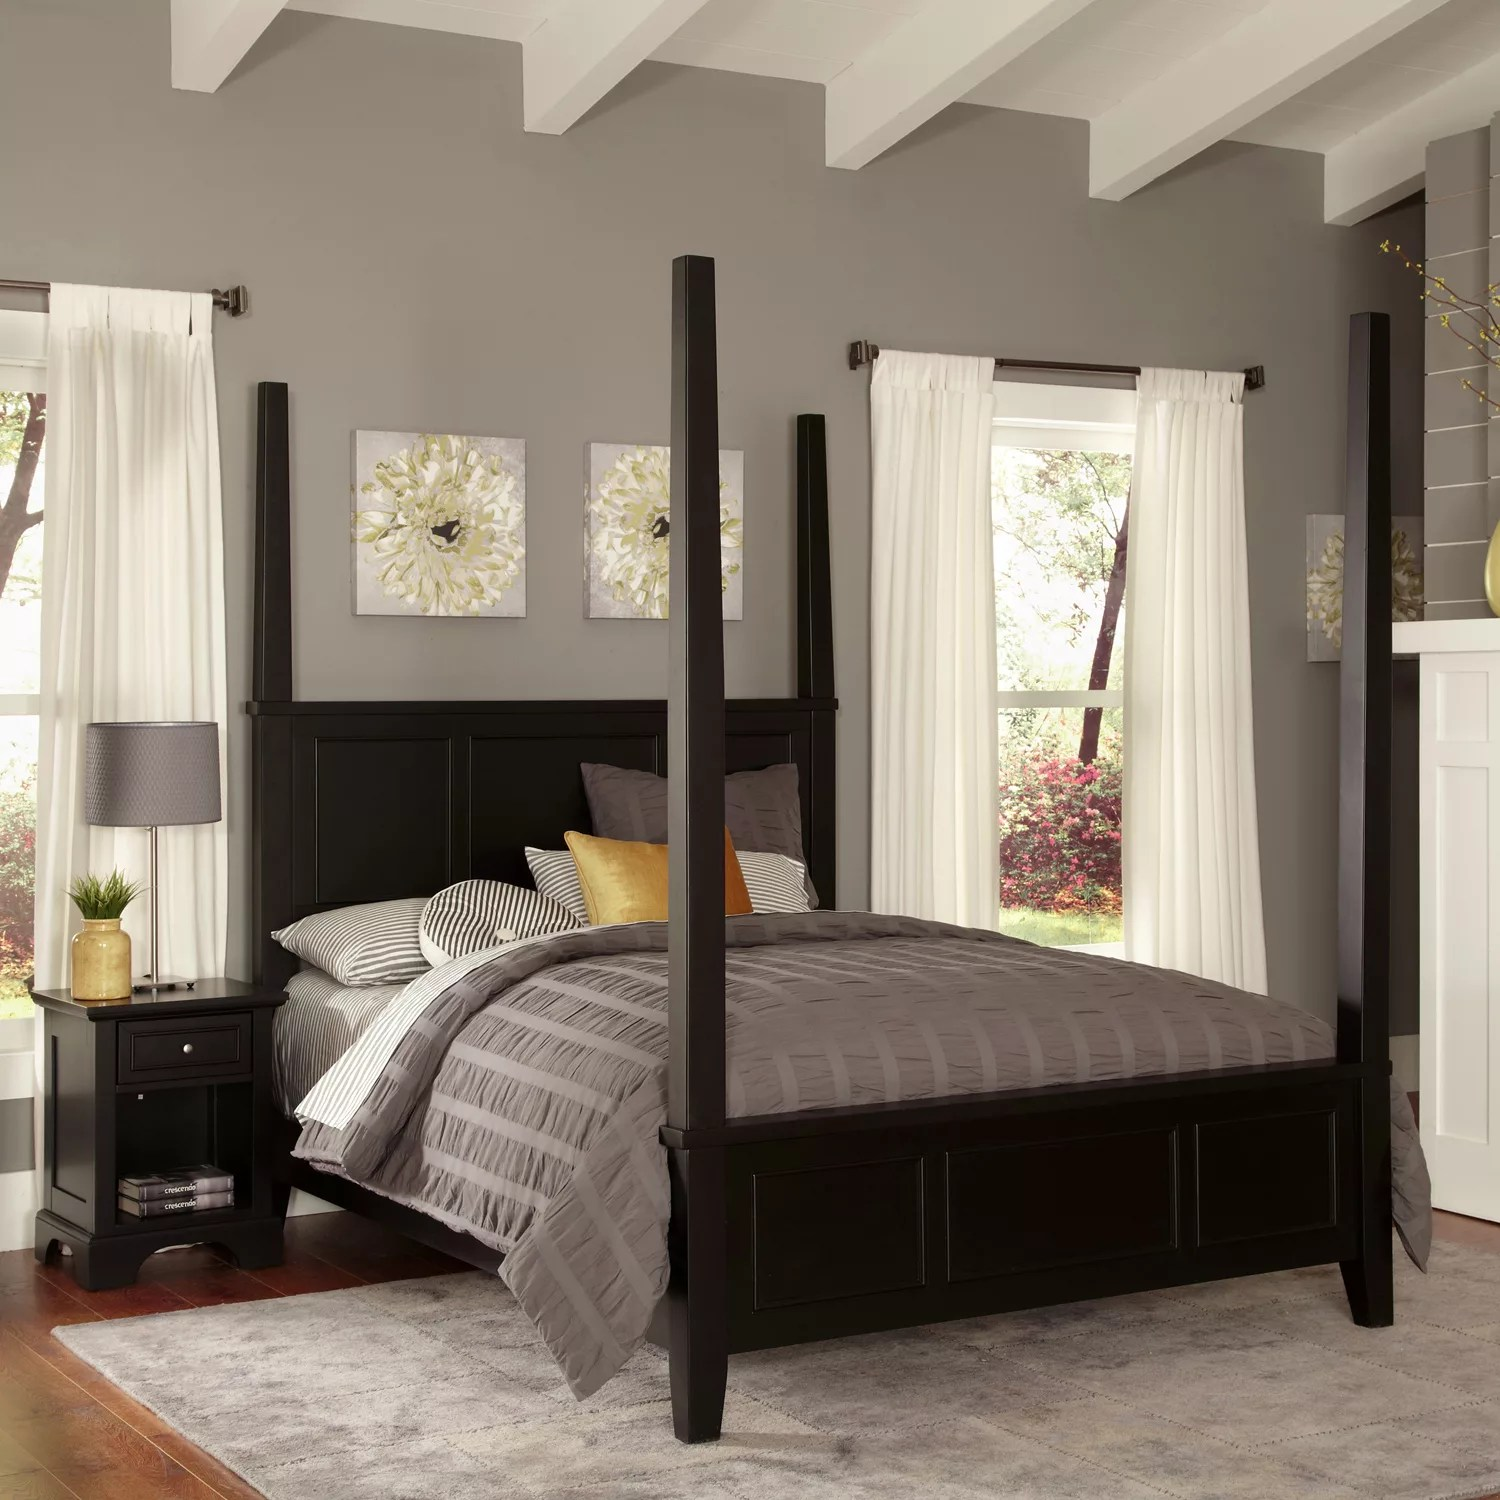 homestyles bedford 4 pc king headboard footboard frame poster bed and nightstand set